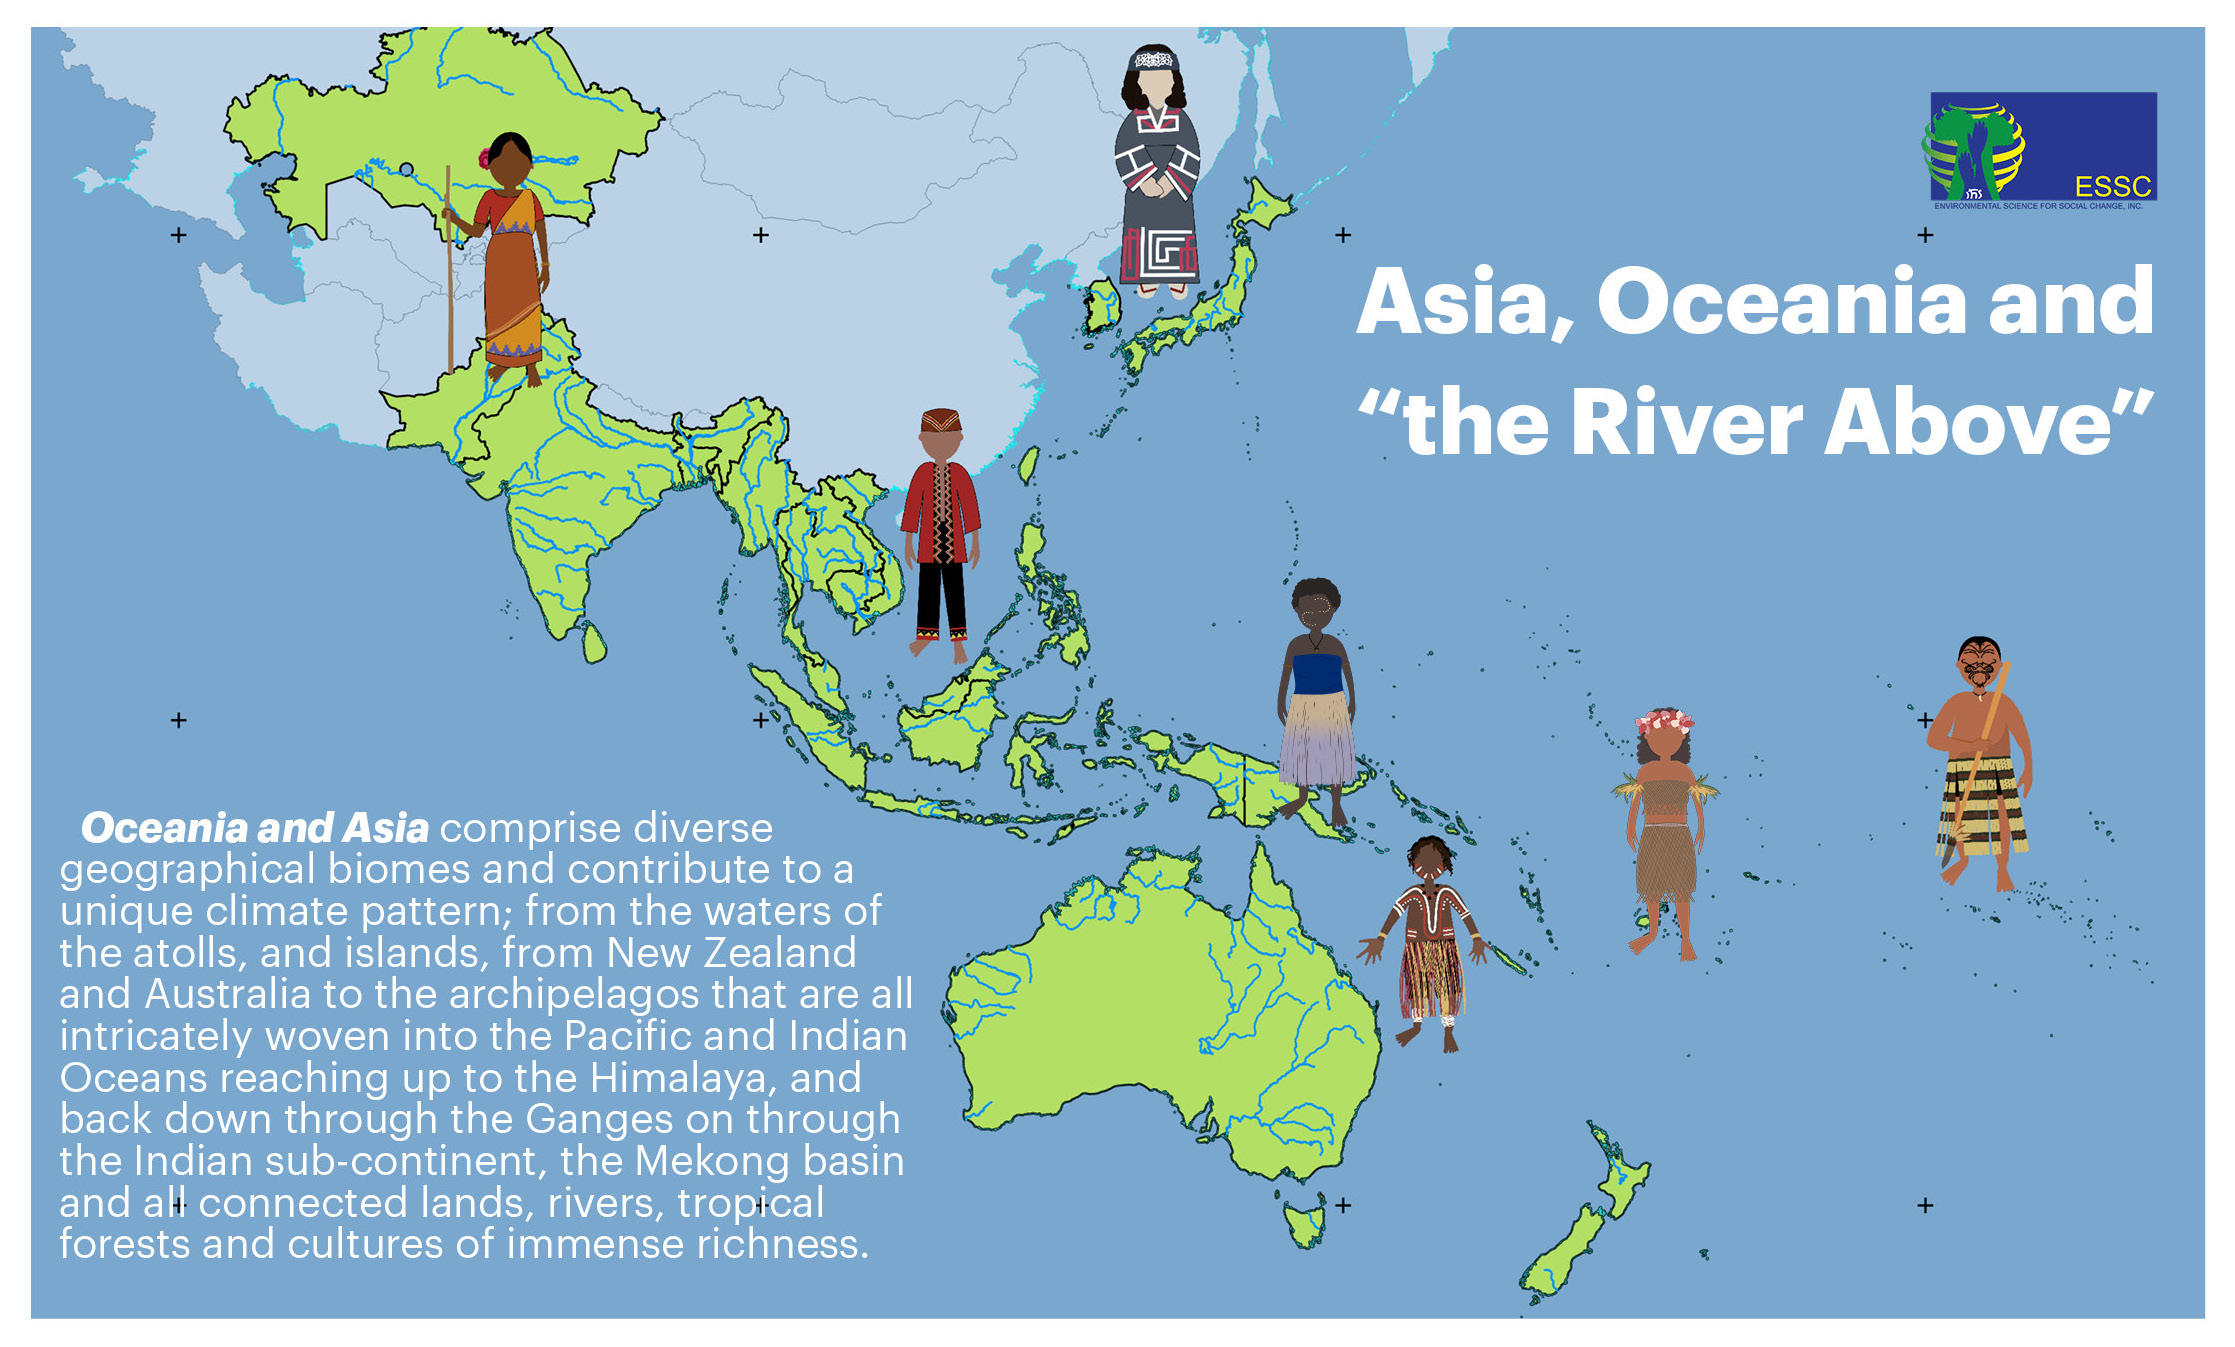 River Above Asia Oceania Ecclesial Network For Forests Oceans And Peoples Ecology And Jesuits In Communication